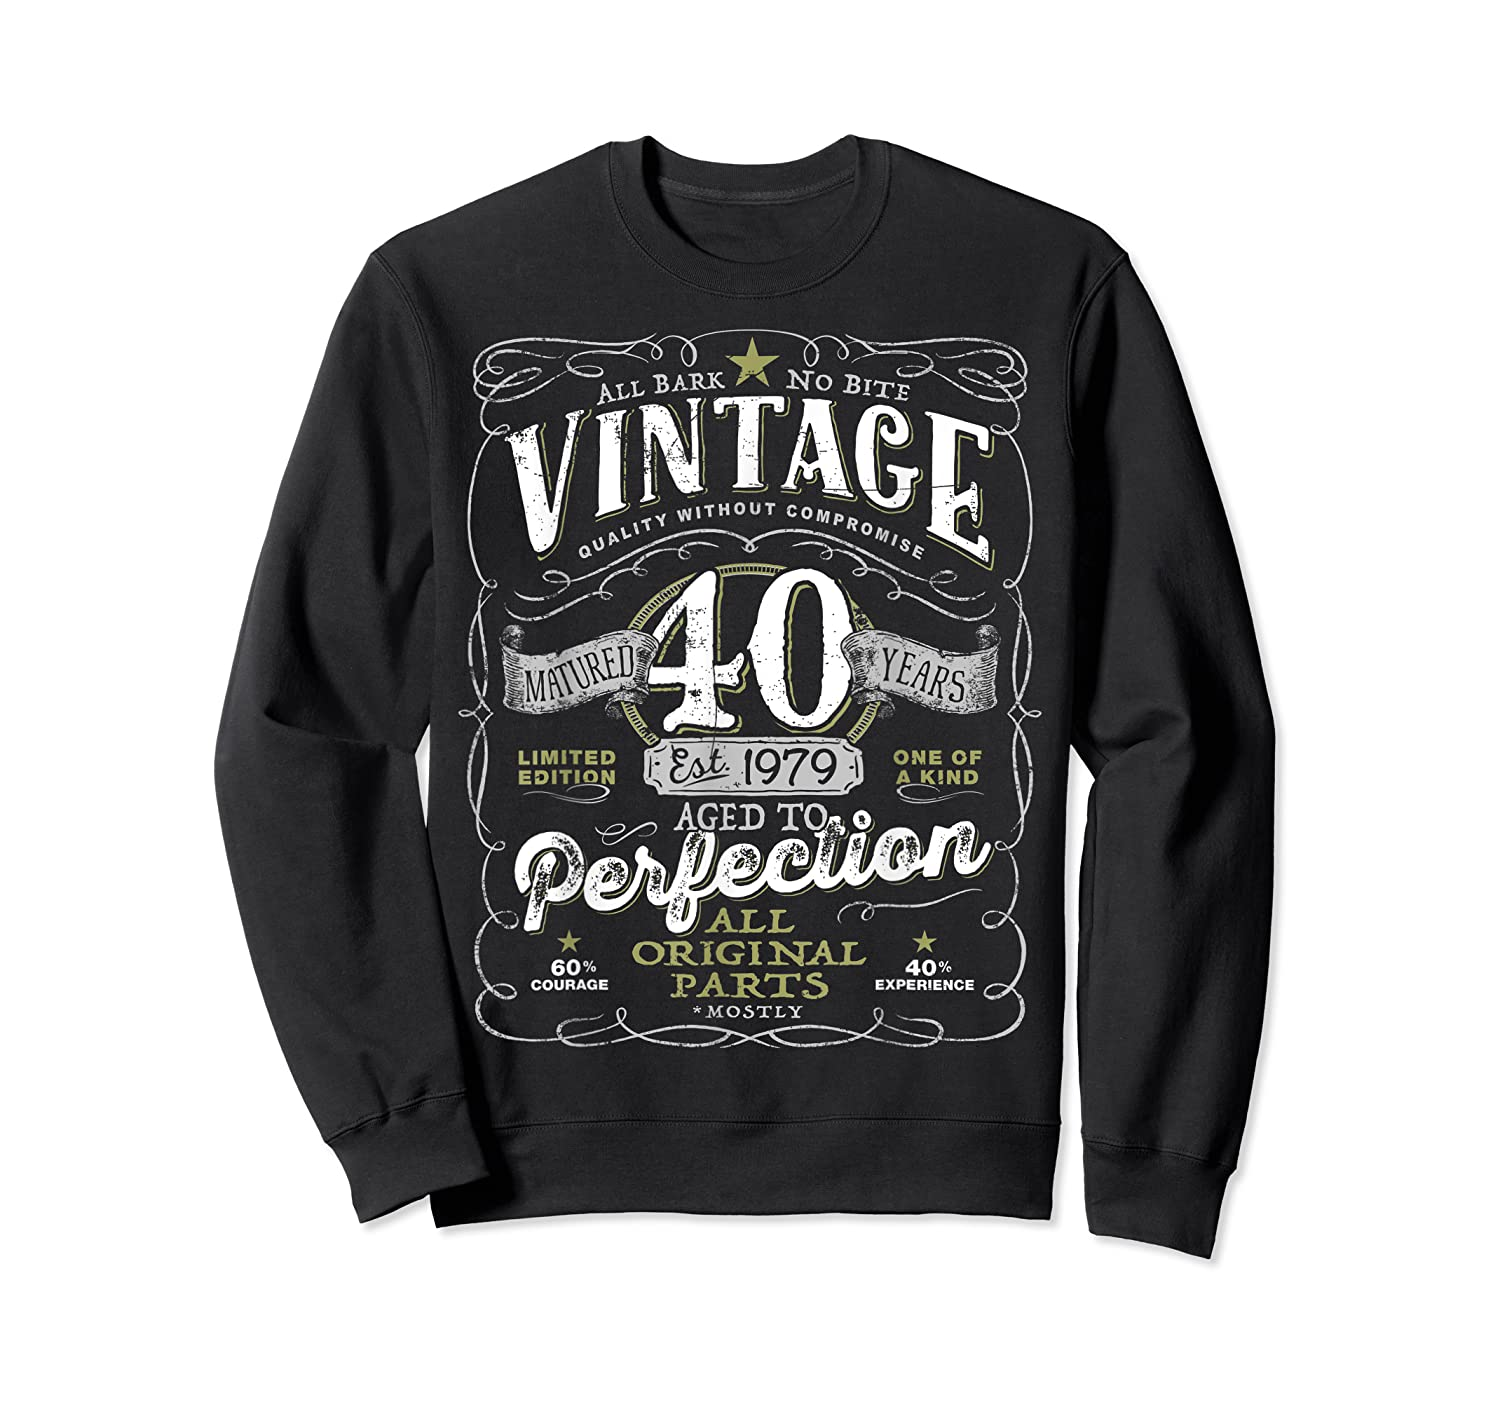 Vintage 40th Birthday Shirt, 1979, Aged To Perfection Crewneck Sweater